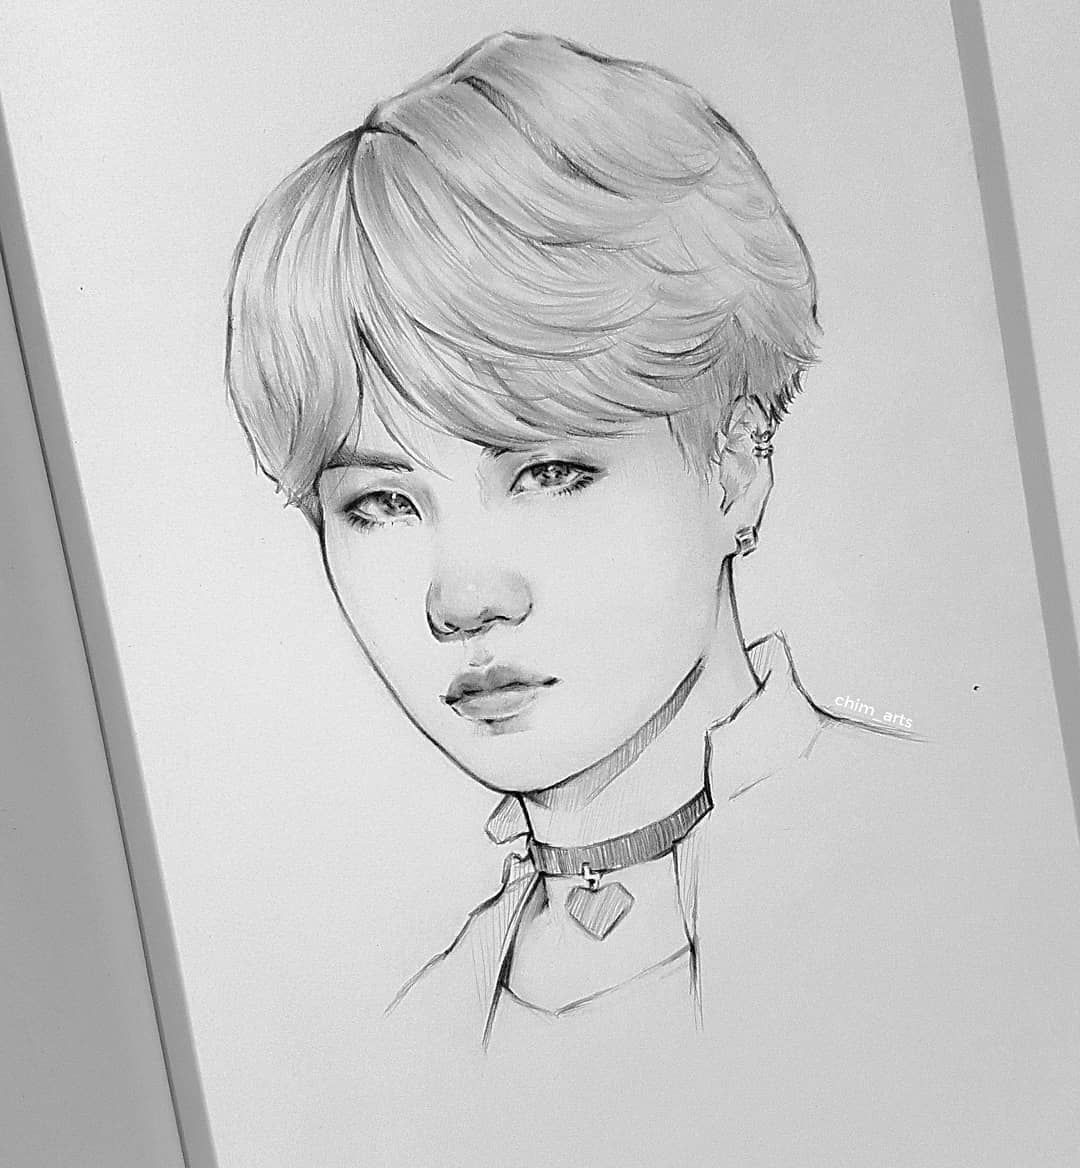 """Photo of Vlada? on Instagram: """"Min Shuga?? I tried to draw this picture not as straightforward as the past. But it turned out as always hd. . #btsart #btsfanart #bts # kpopfanart … """""""